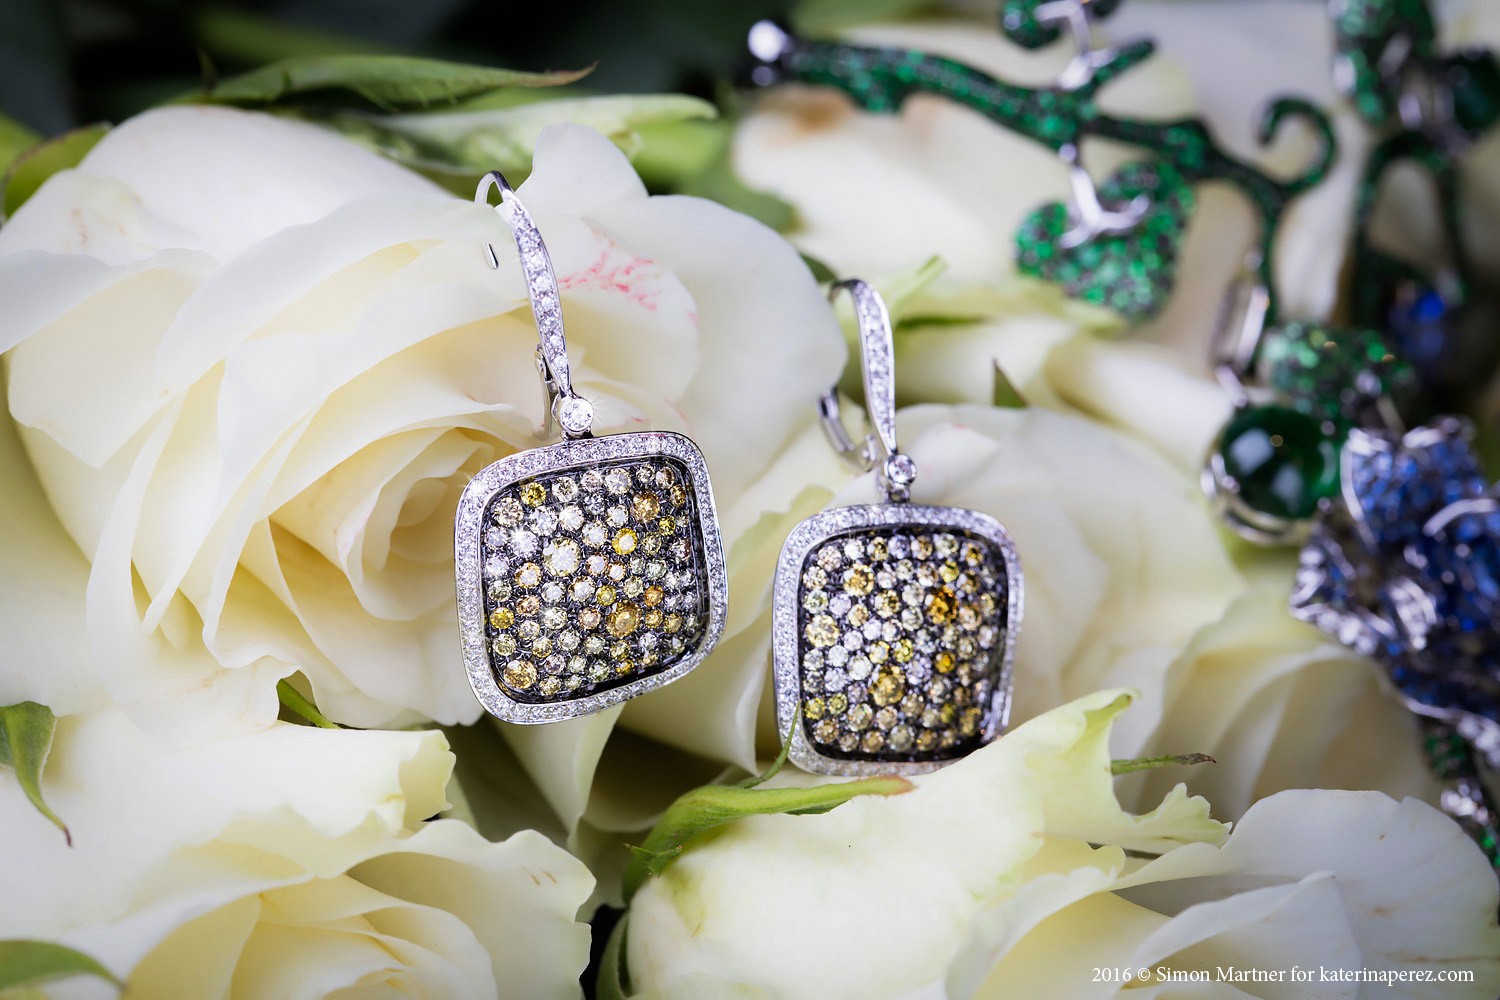 Plukka 2.45 cts diamonds and white gold earrings - £4,440